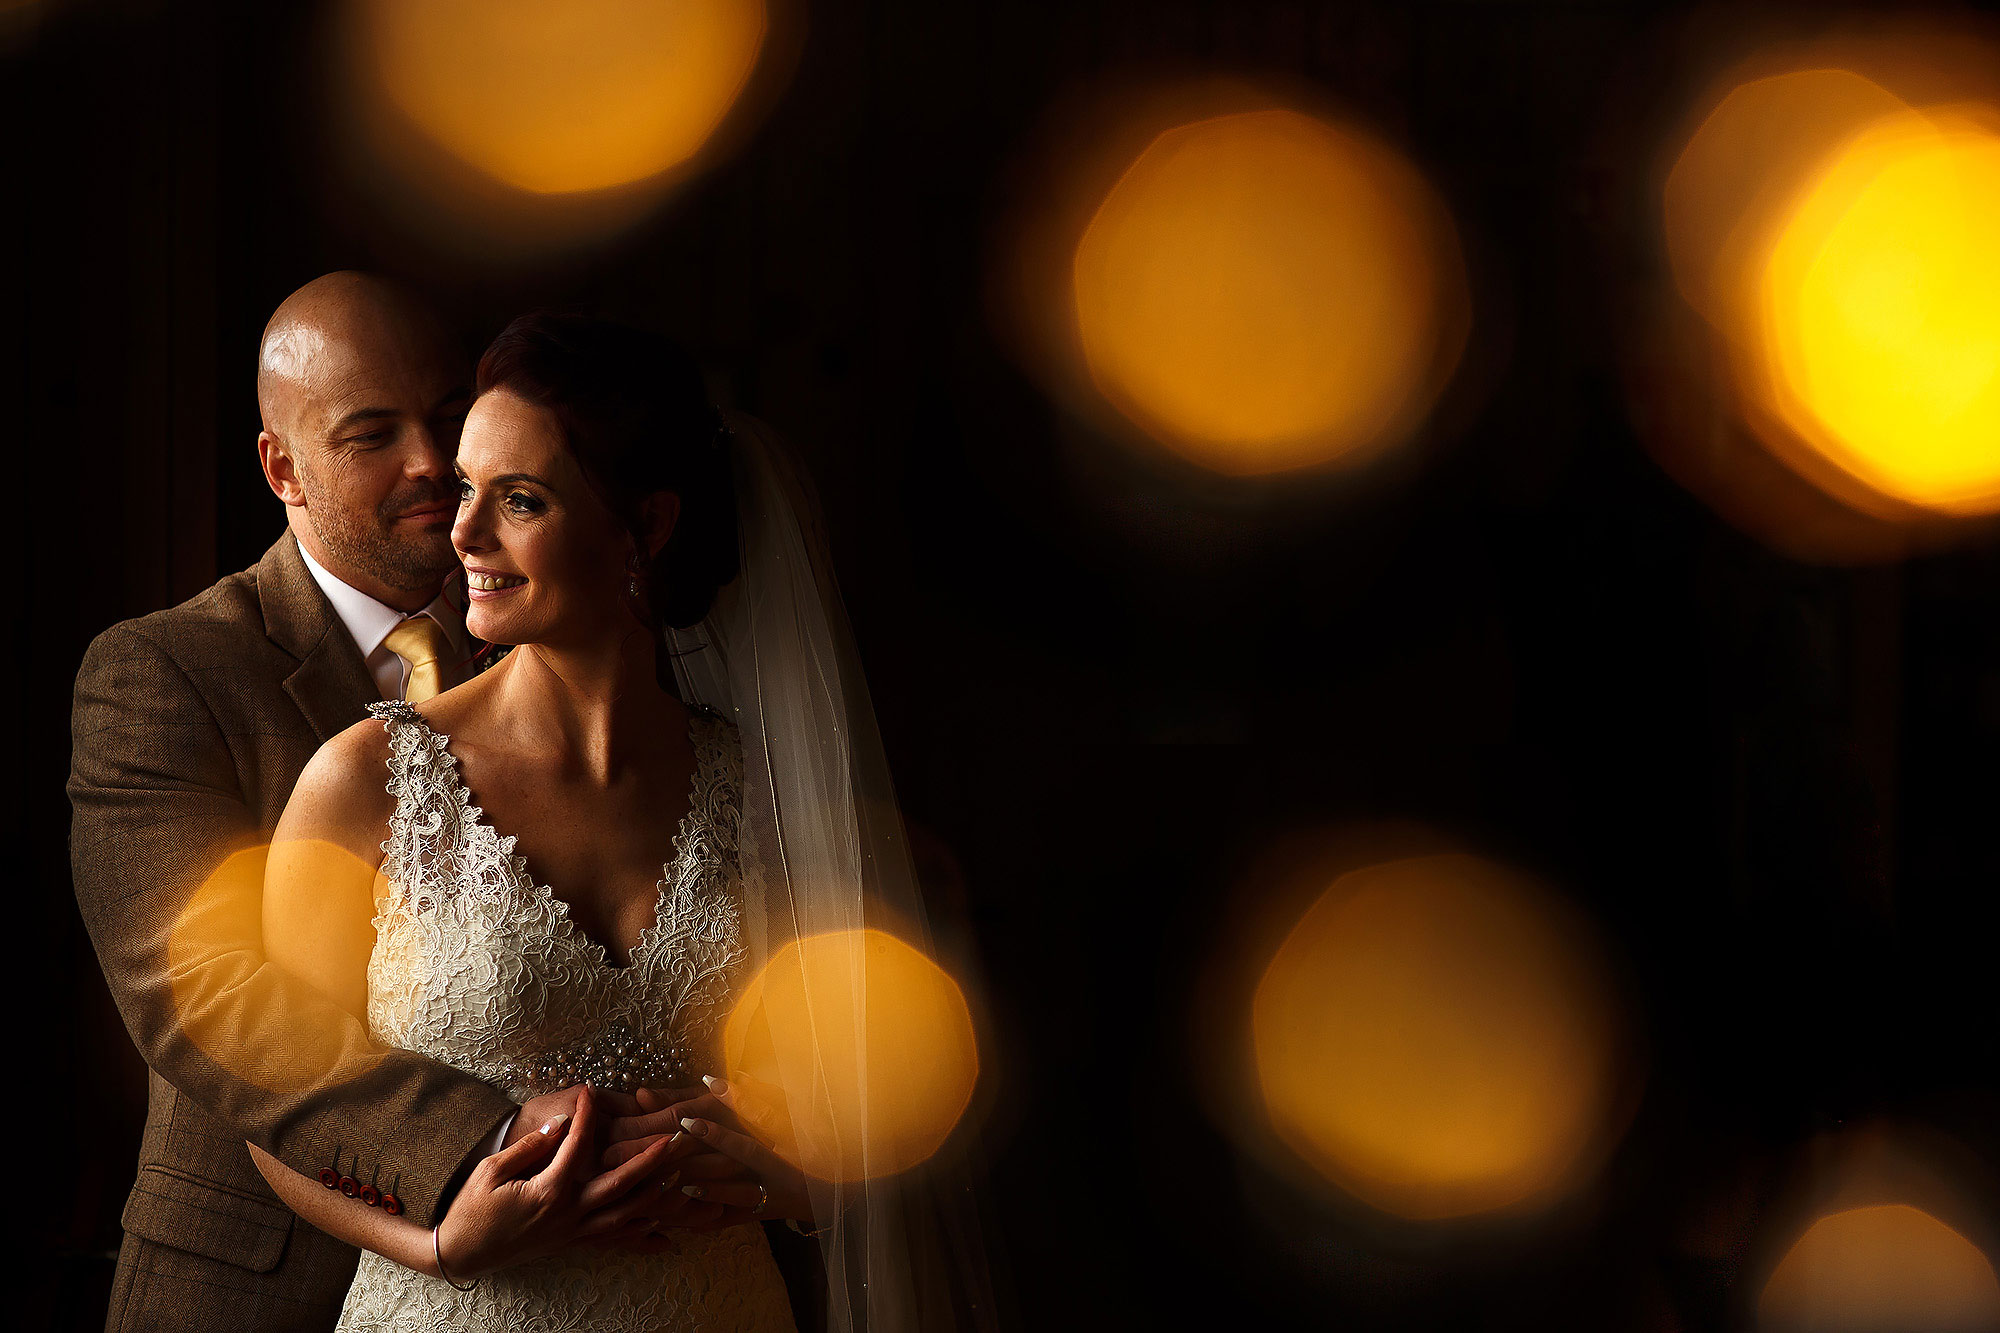 Bride and groom in beautiful window light. Bride wearing lace wedding dress, groom wearing tweed brown suit | Summer wedding at Wellbeing Farm - Toni Darcy Photography